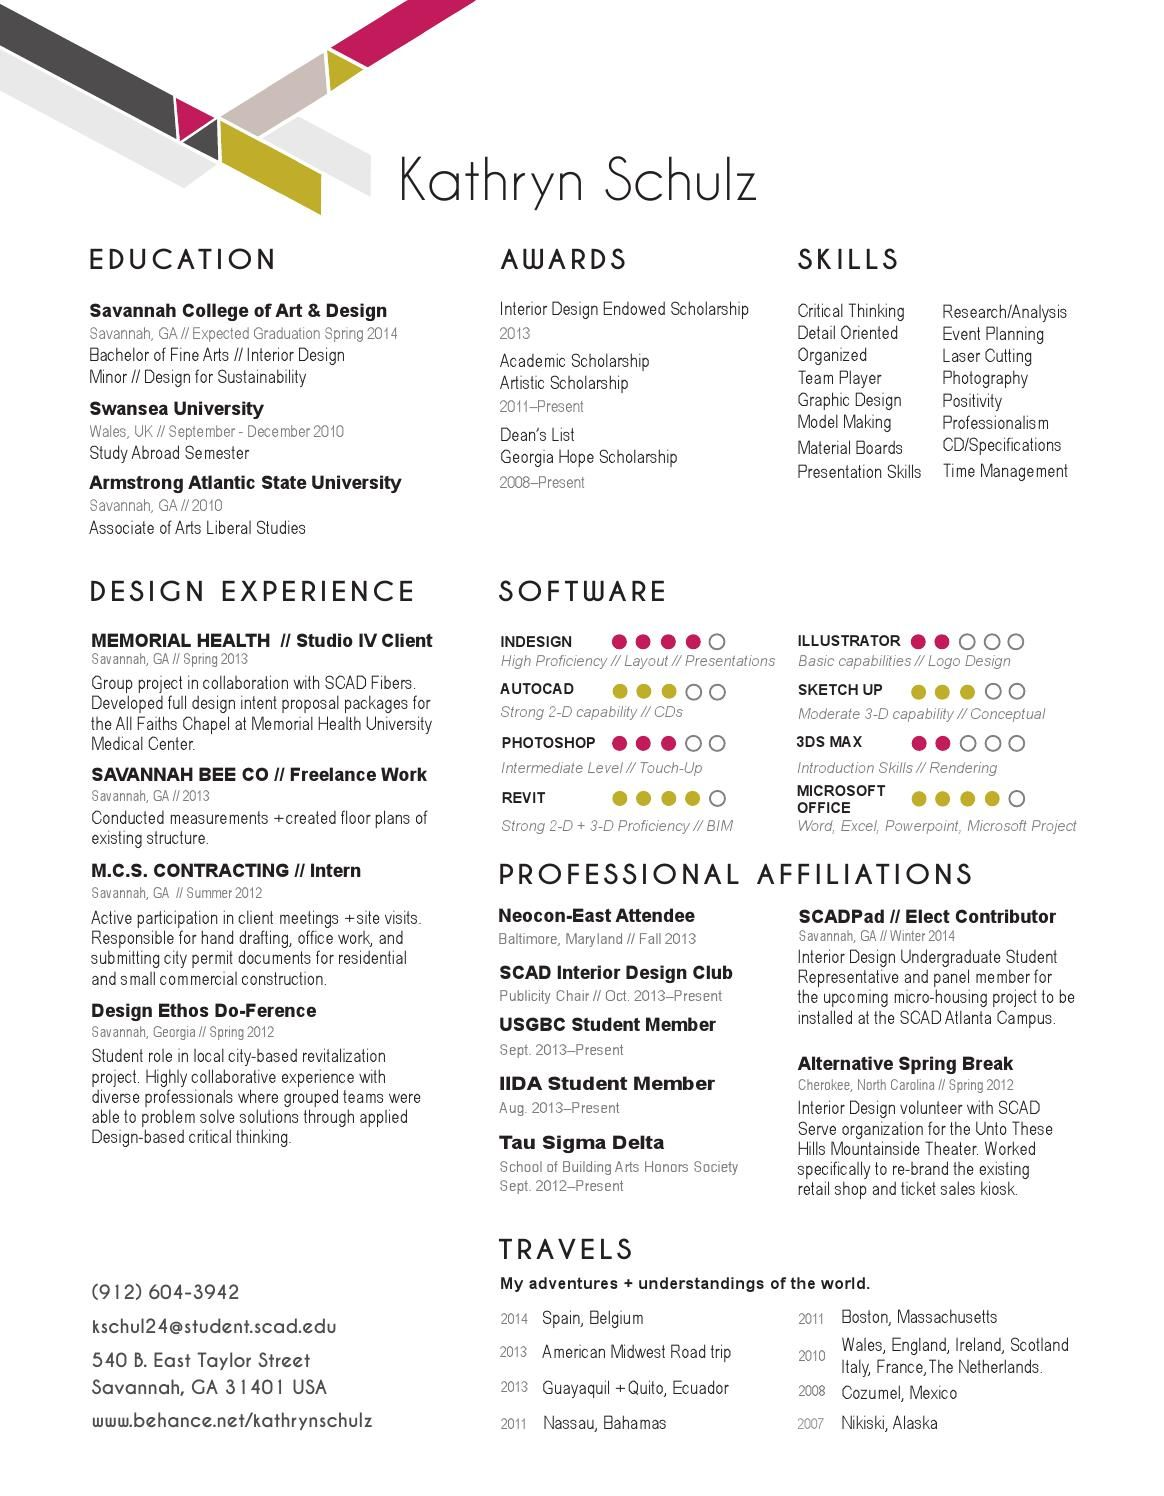 Kathryn Schulz Interior Design Resume // Portfolio 2014 | School ...